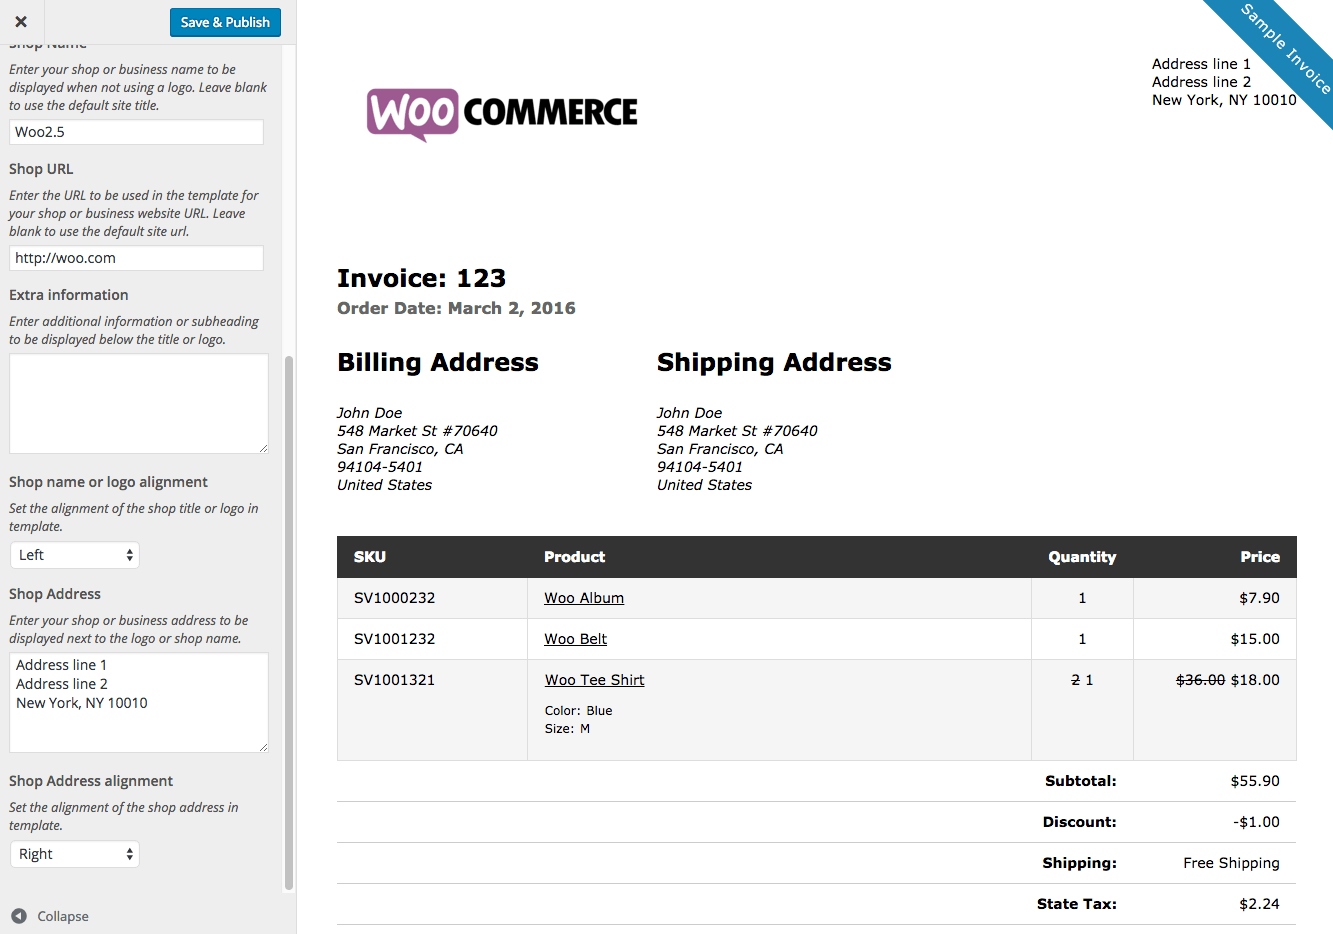 Totallocalus  Stunning Woocommerce Print Invoices Amp Packing Lists  Woocommerce Docs With Entrancing Woocommerce Print Invoices  Packing Lists Customizer With Cute Invoice Translate Also Invoice Template Usa In Addition Invoice Maker Online And Free Sample Invoice Template Word As Well As New Car Invoice Prices By Vin Additionally What Is A Supplier Invoice From Docswoocommercecom With Totallocalus  Entrancing Woocommerce Print Invoices Amp Packing Lists  Woocommerce Docs With Cute Woocommerce Print Invoices  Packing Lists Customizer And Stunning Invoice Translate Also Invoice Template Usa In Addition Invoice Maker Online From Docswoocommercecom